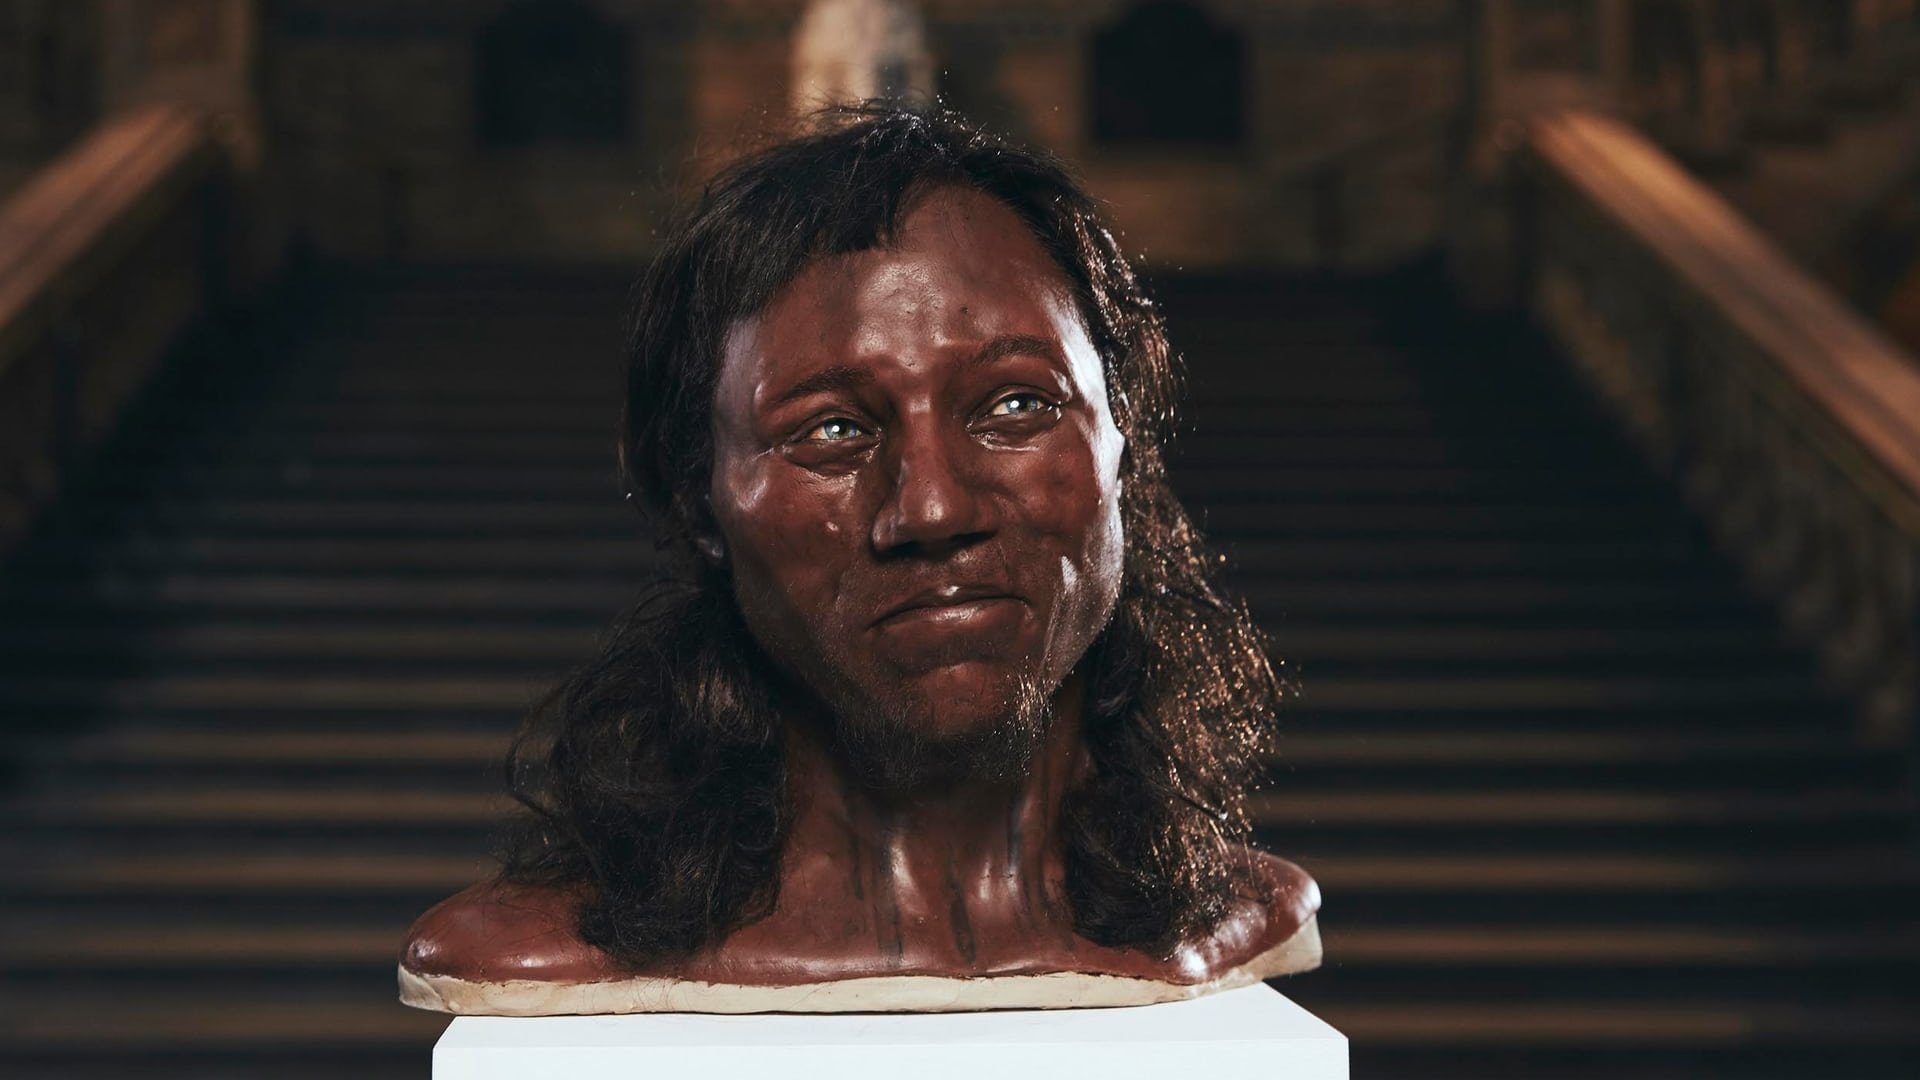 Cheddar Man Reconstructed with DNA, 3D Scanning & 3D Printing | All3DP